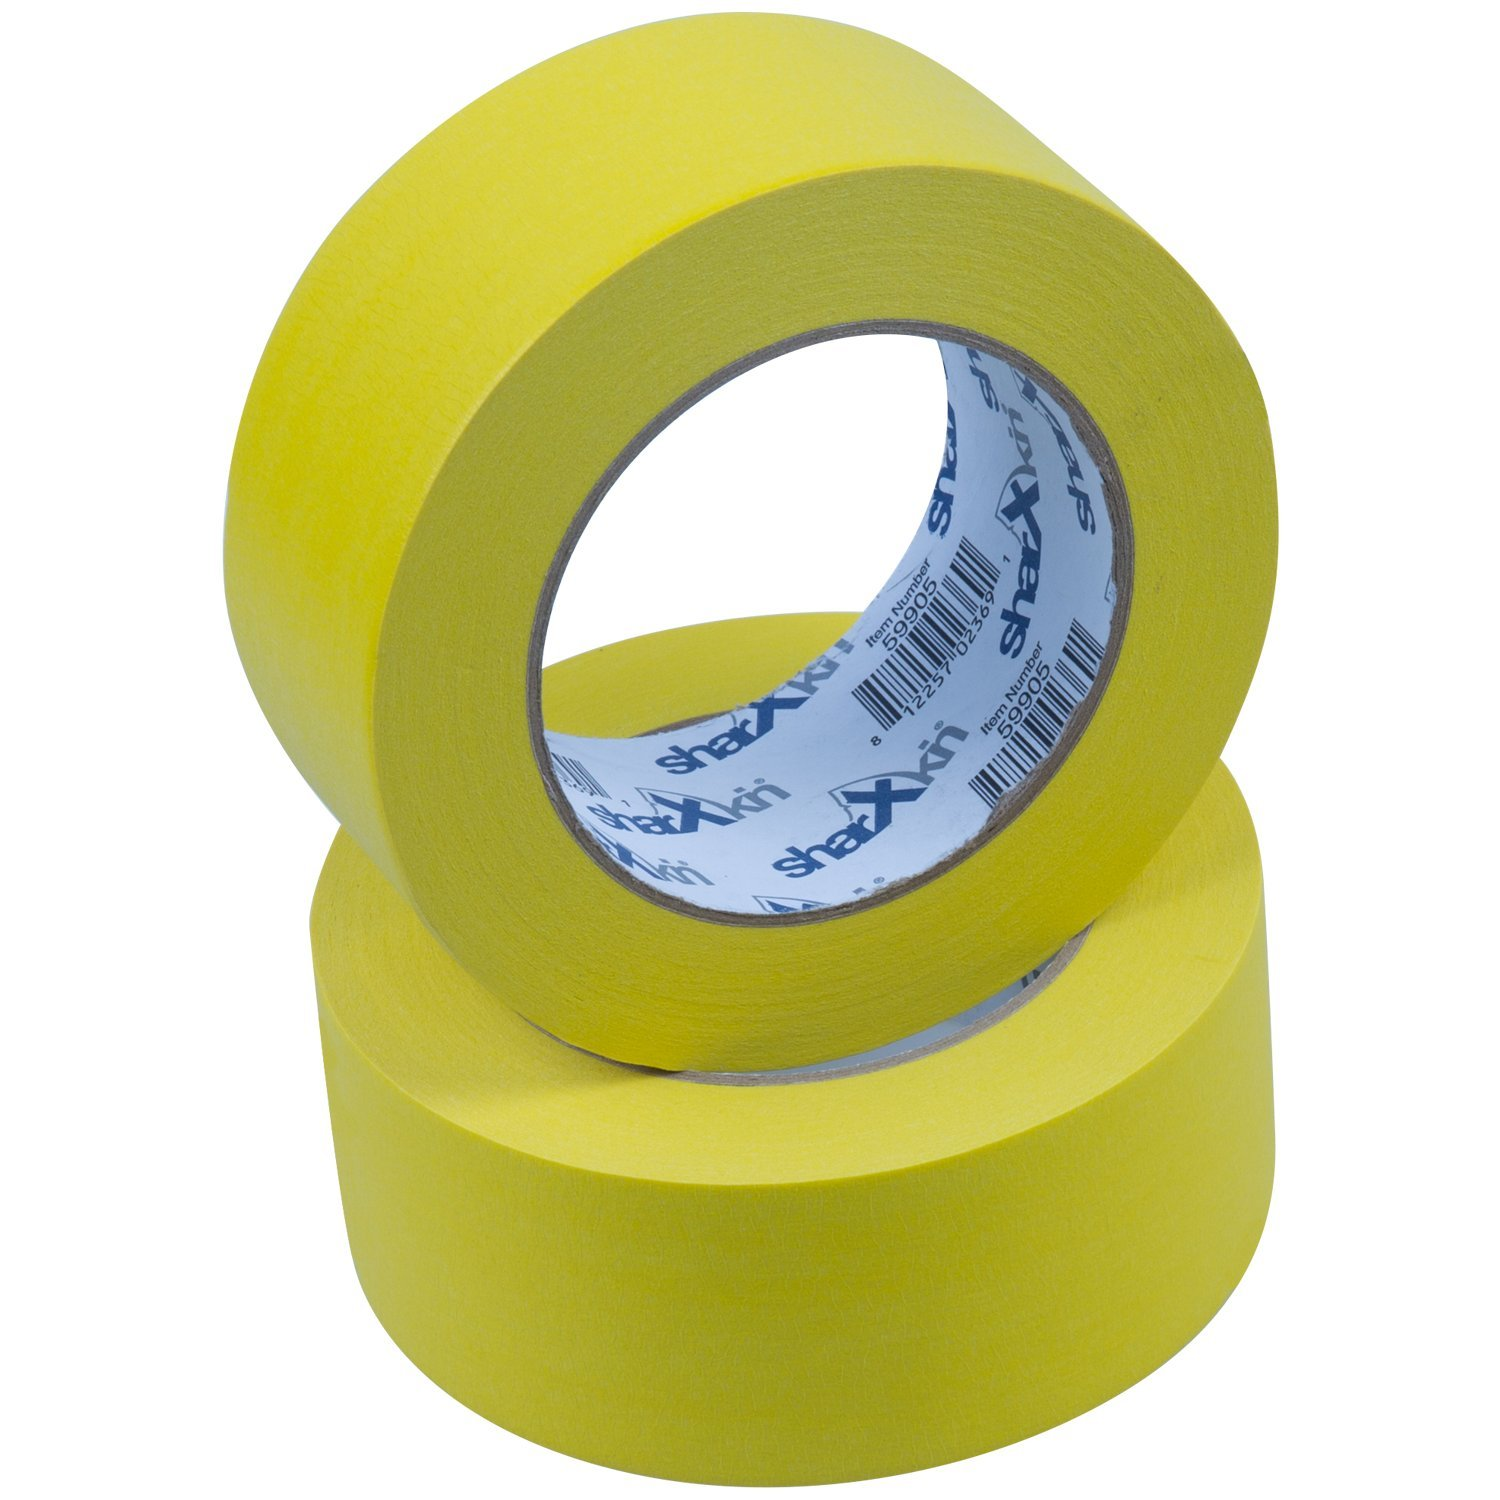 Sharxkin No-Residue Masking Tape, Yellow, 2-Inches x 60-Yards, Pack of 24 Rolls